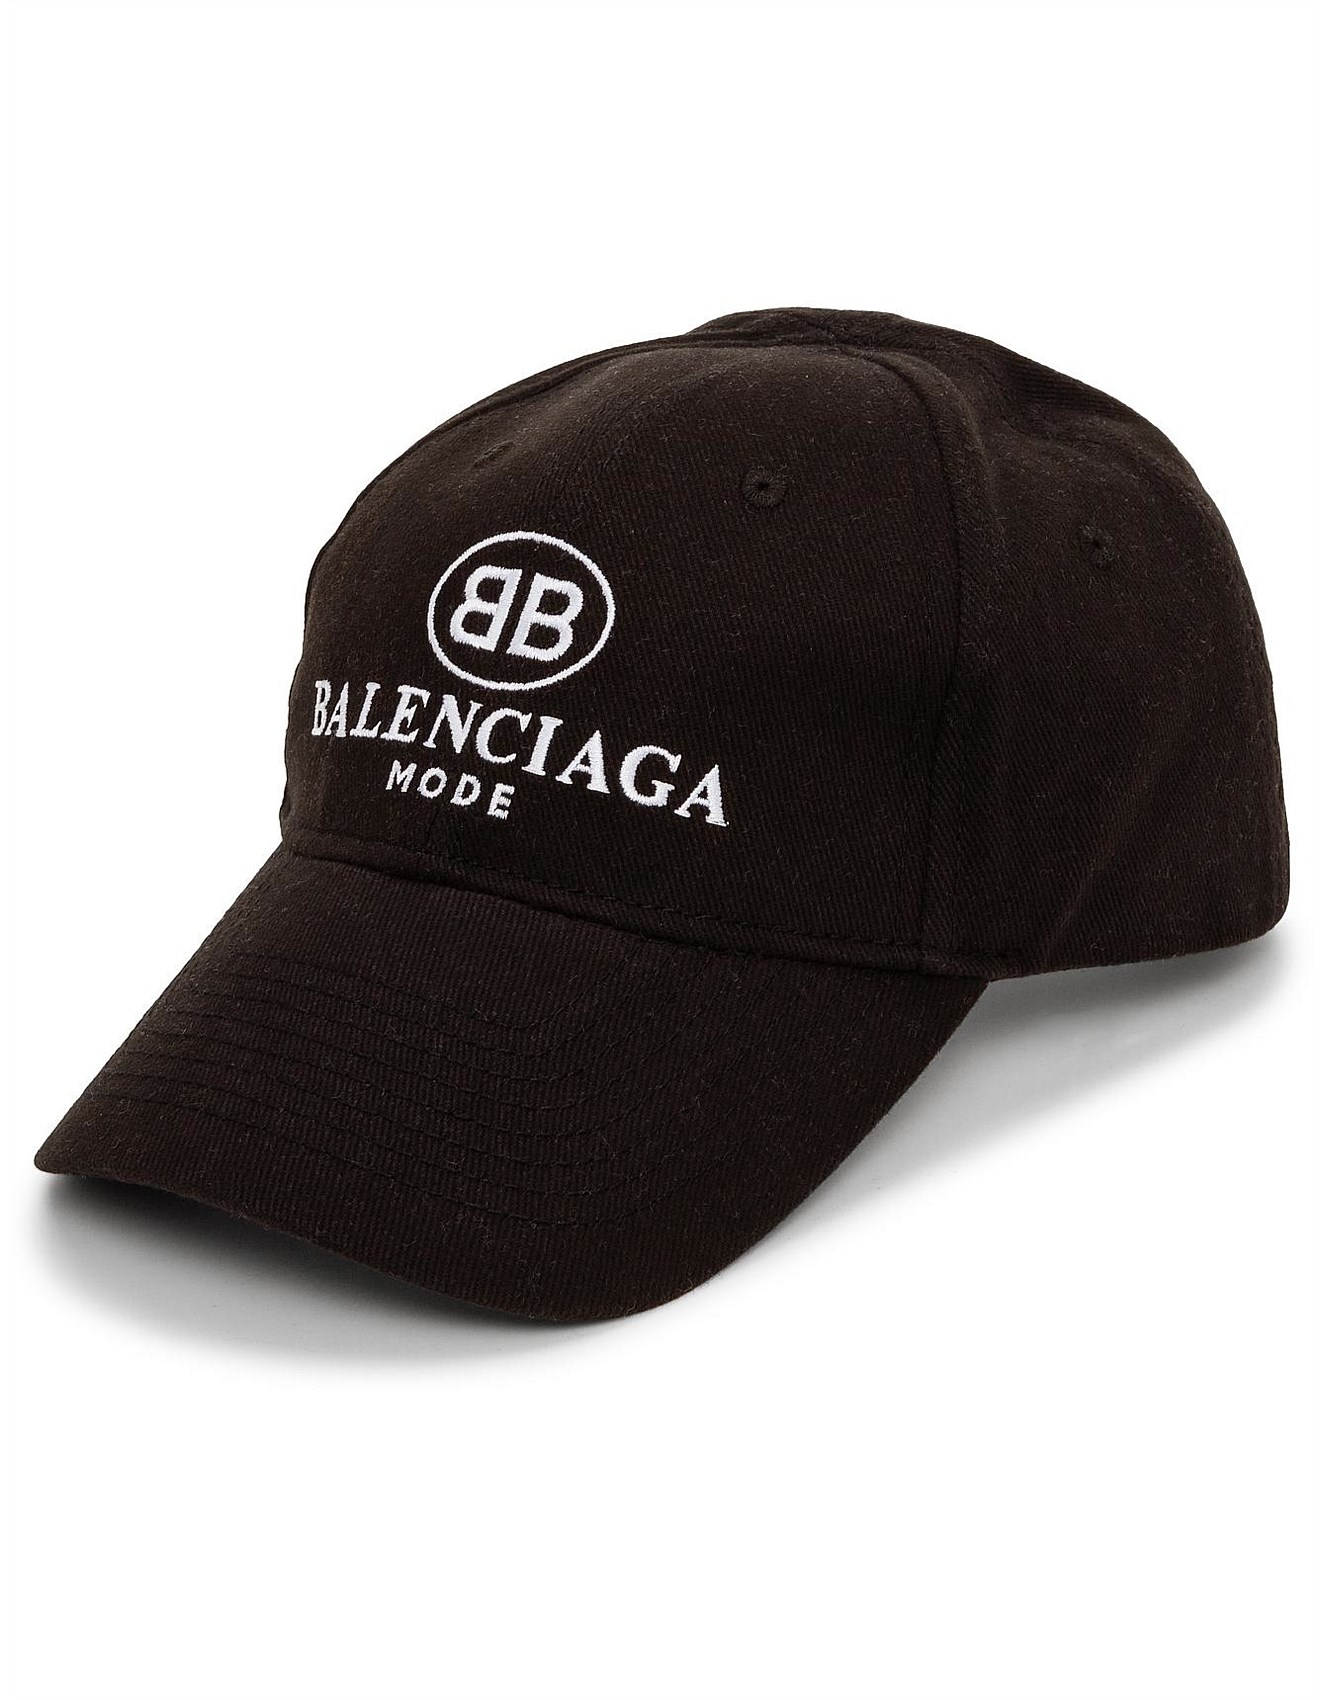 3ce43790ba1 The Fitness Fanatic - EMBROIDERED BB MODE CAP